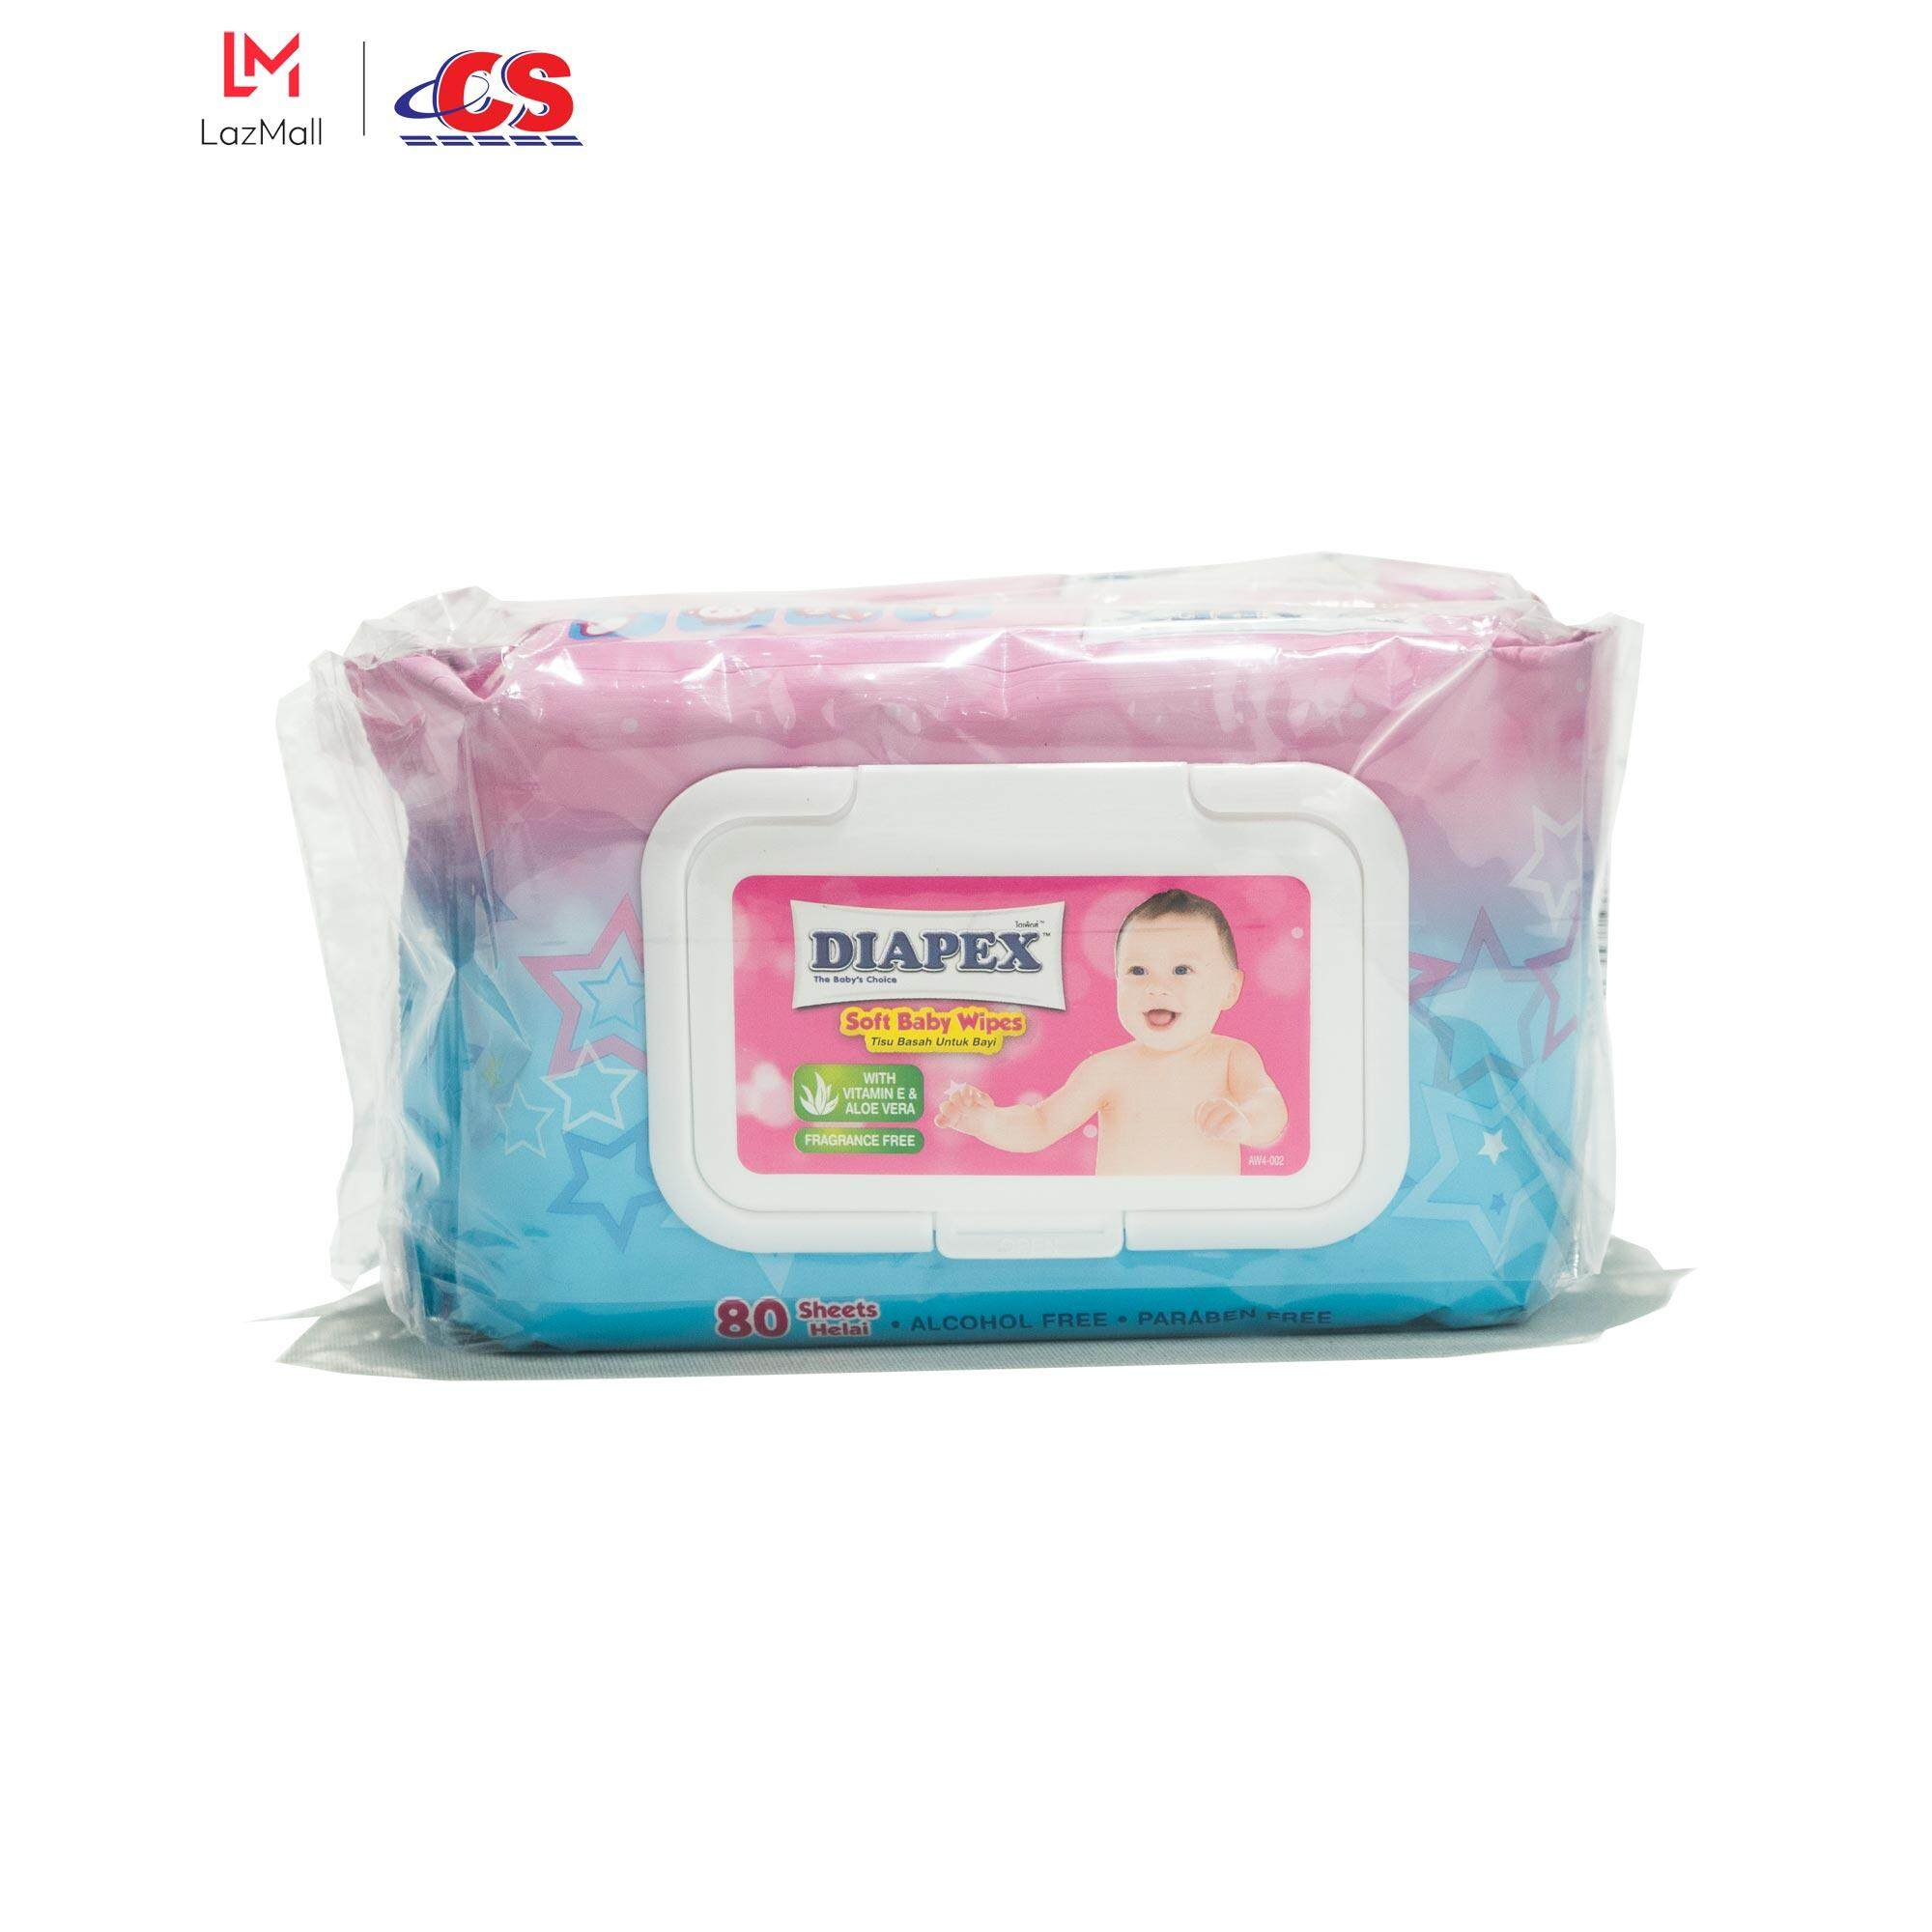 DIAPEX Soft Baby Wipes Twin Pack 2x80s